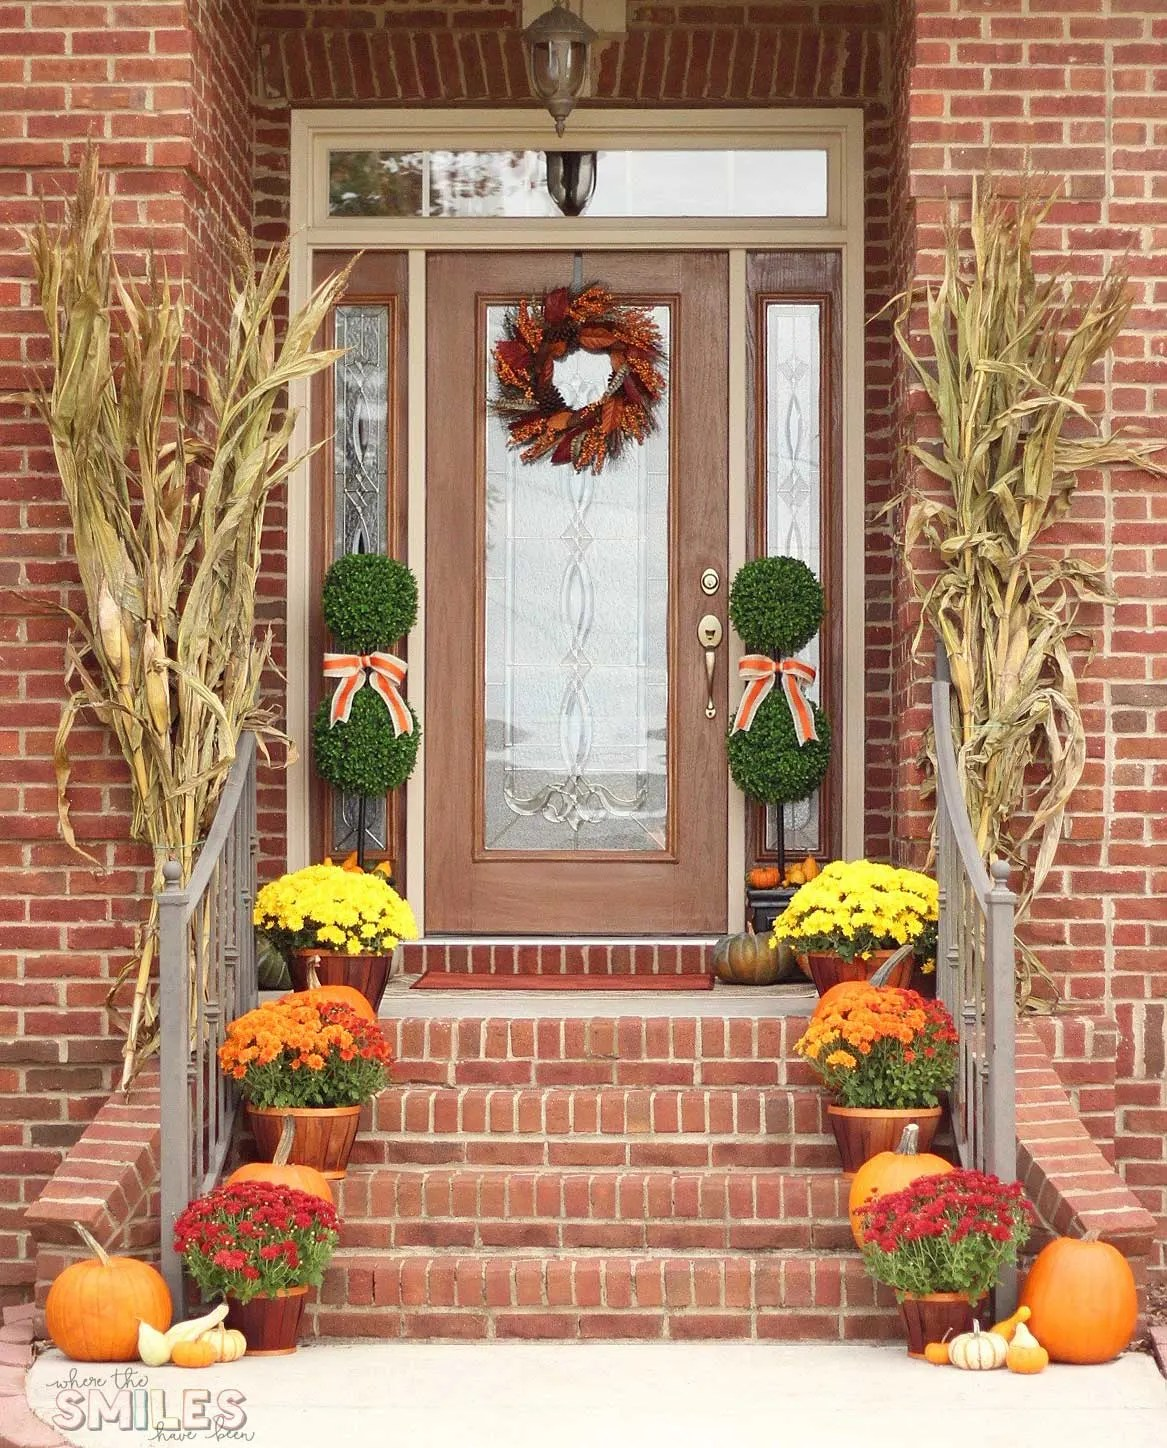 Fall front porch decor our happy harvest at home - Fall front porch ideas ...